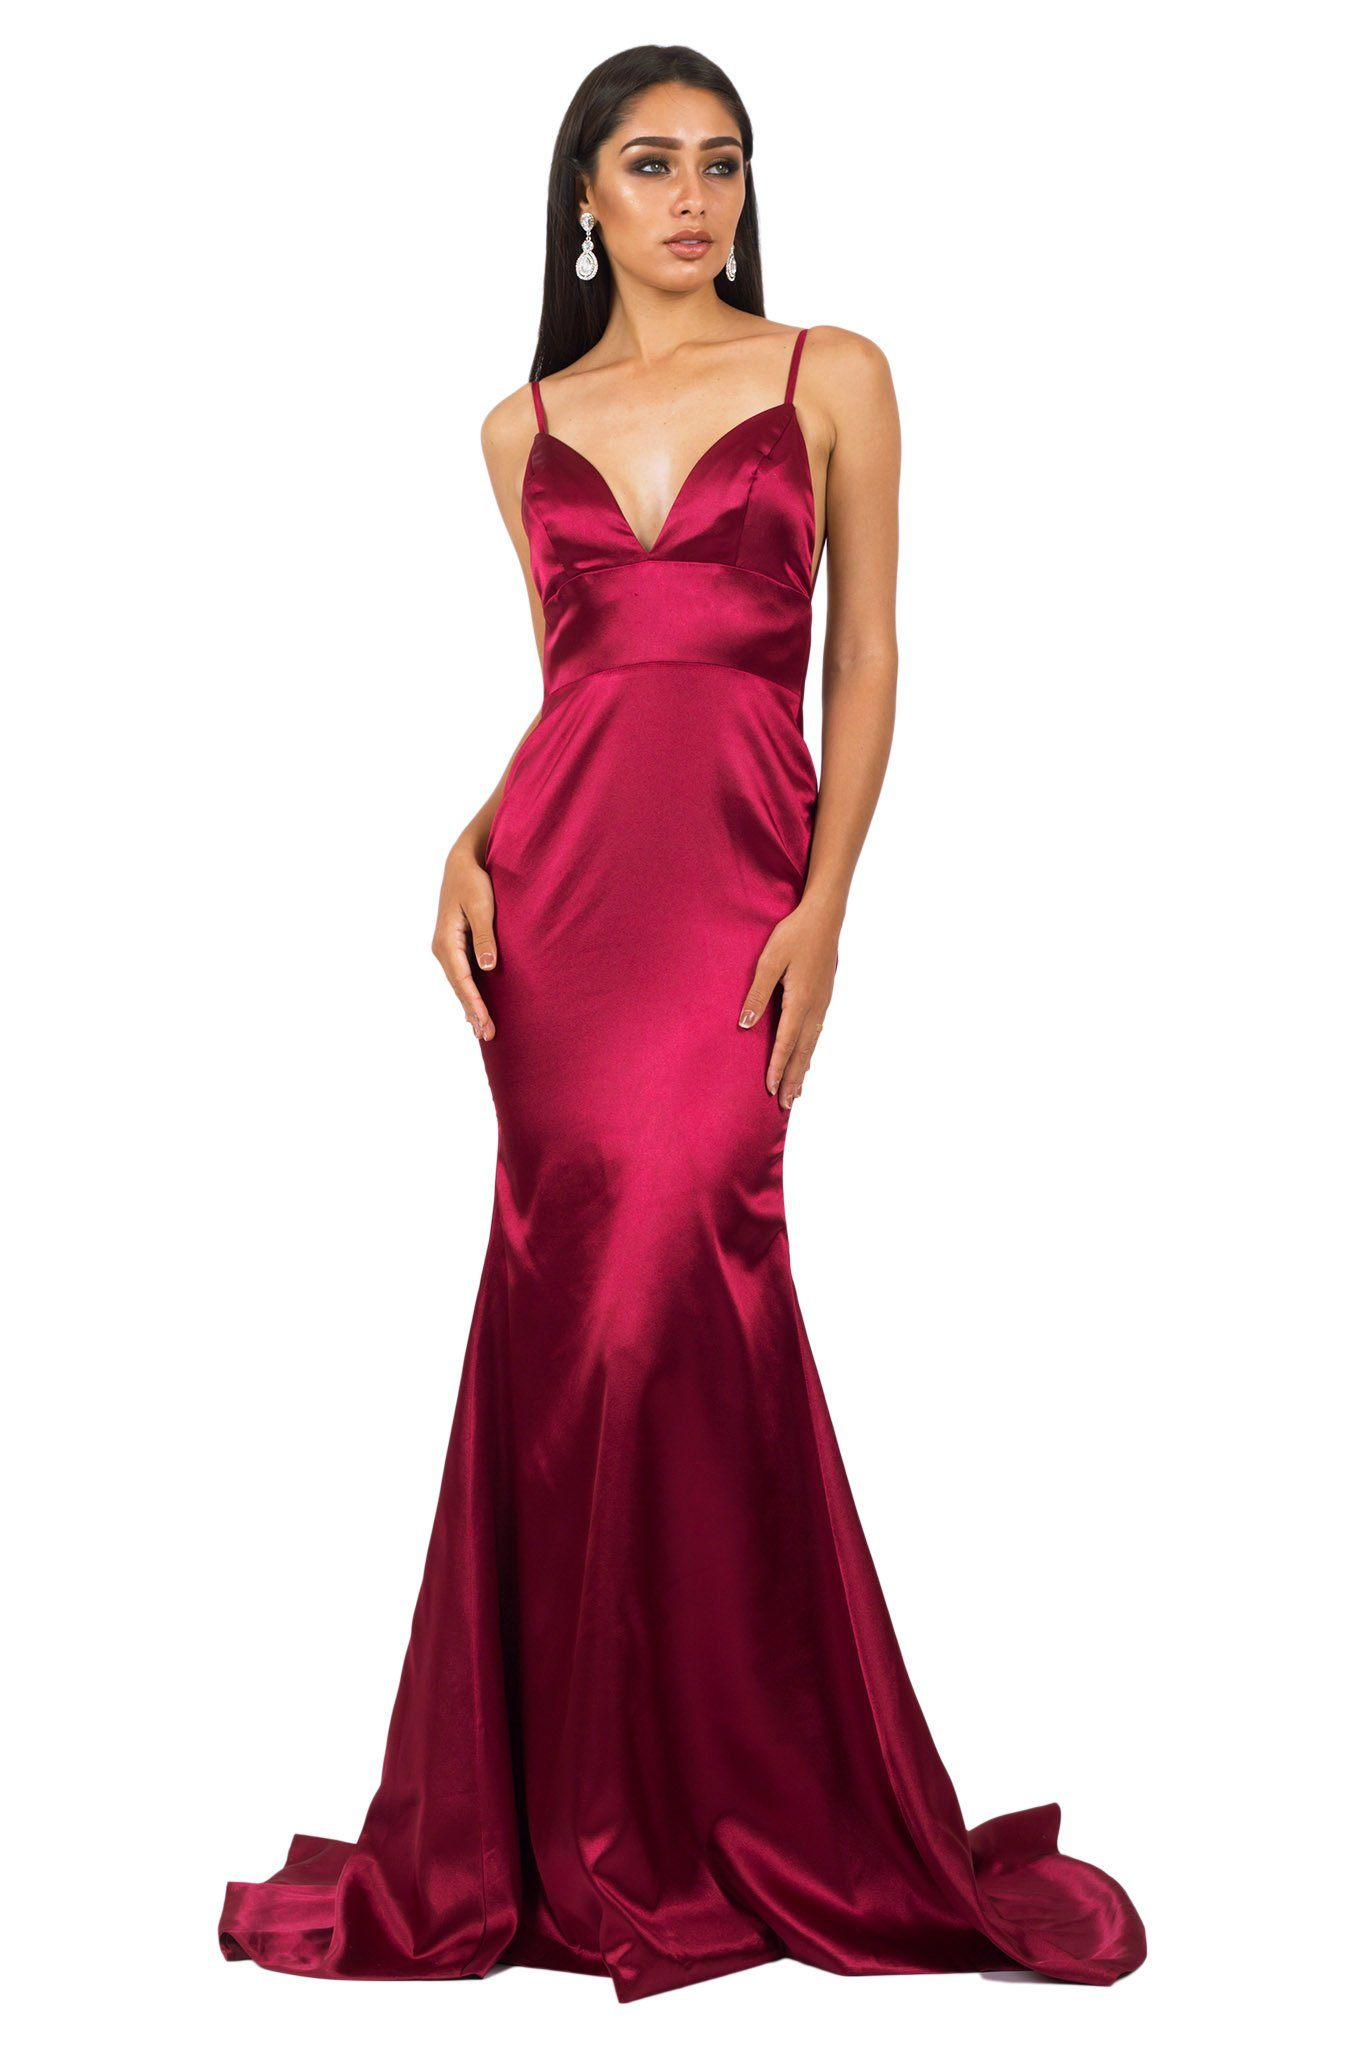 Front of deep red burgundy silk satin floor length formal evening sleeveless gown with V neckline, thin shoulder straps, backless design and long train